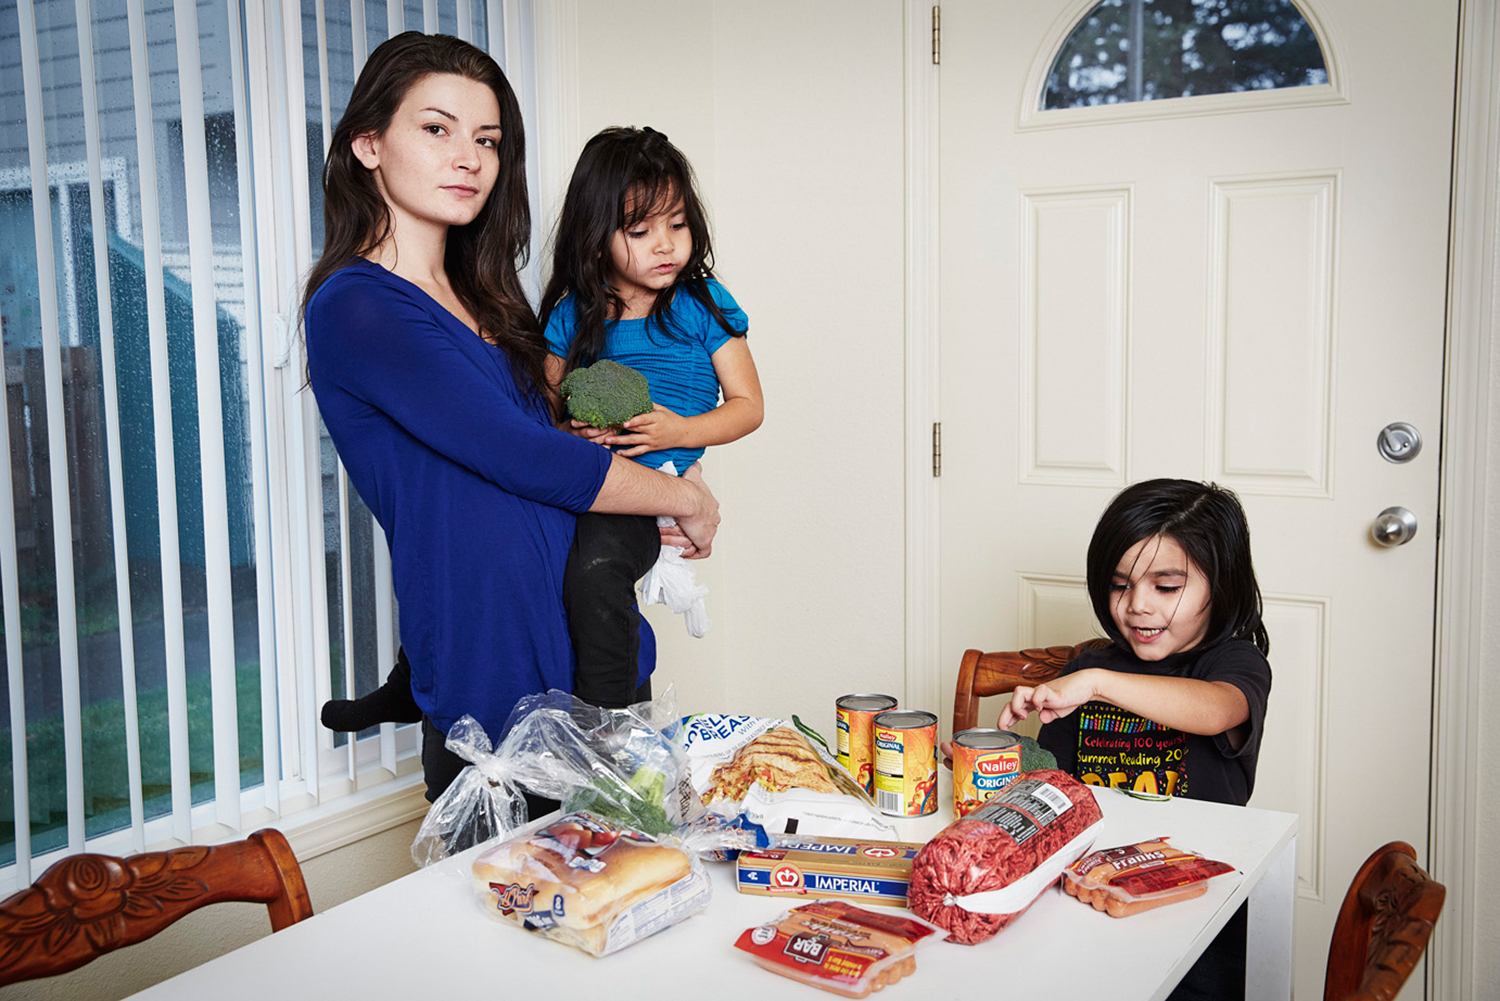 Jennifer Noonan works part-time for Walmart and is pictured here with the food she was able to buy at the end of the month (with about $20 left to her name), including a couple of packs of hotdogs, margarine, canned chili and broccoli. She shops at a Grocery Outlet, a discount store near her home to save cash.